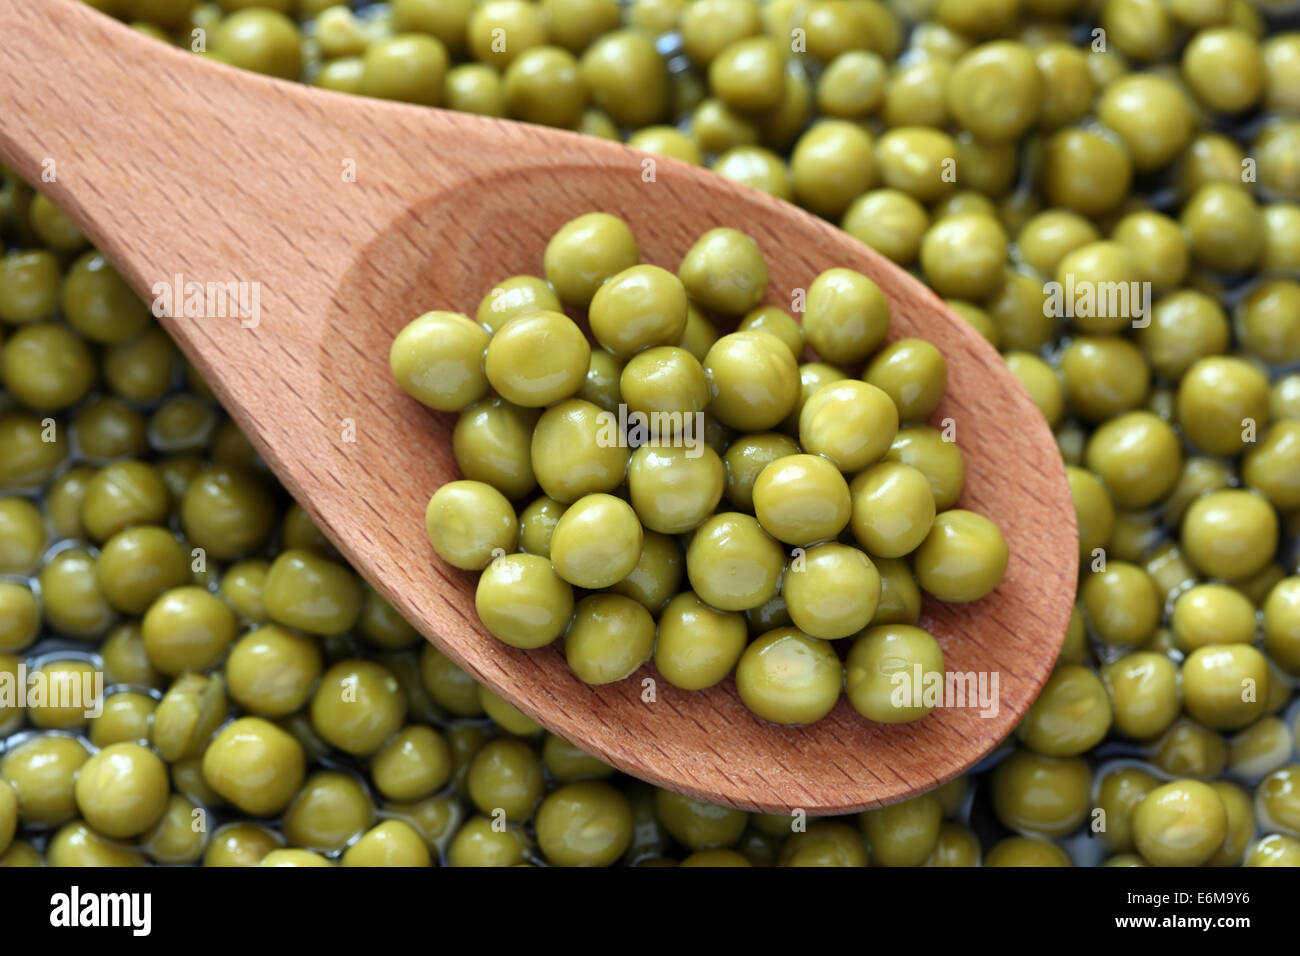 Preserved green peas in a wooden spoon on preserved green peas background. - Stock Image